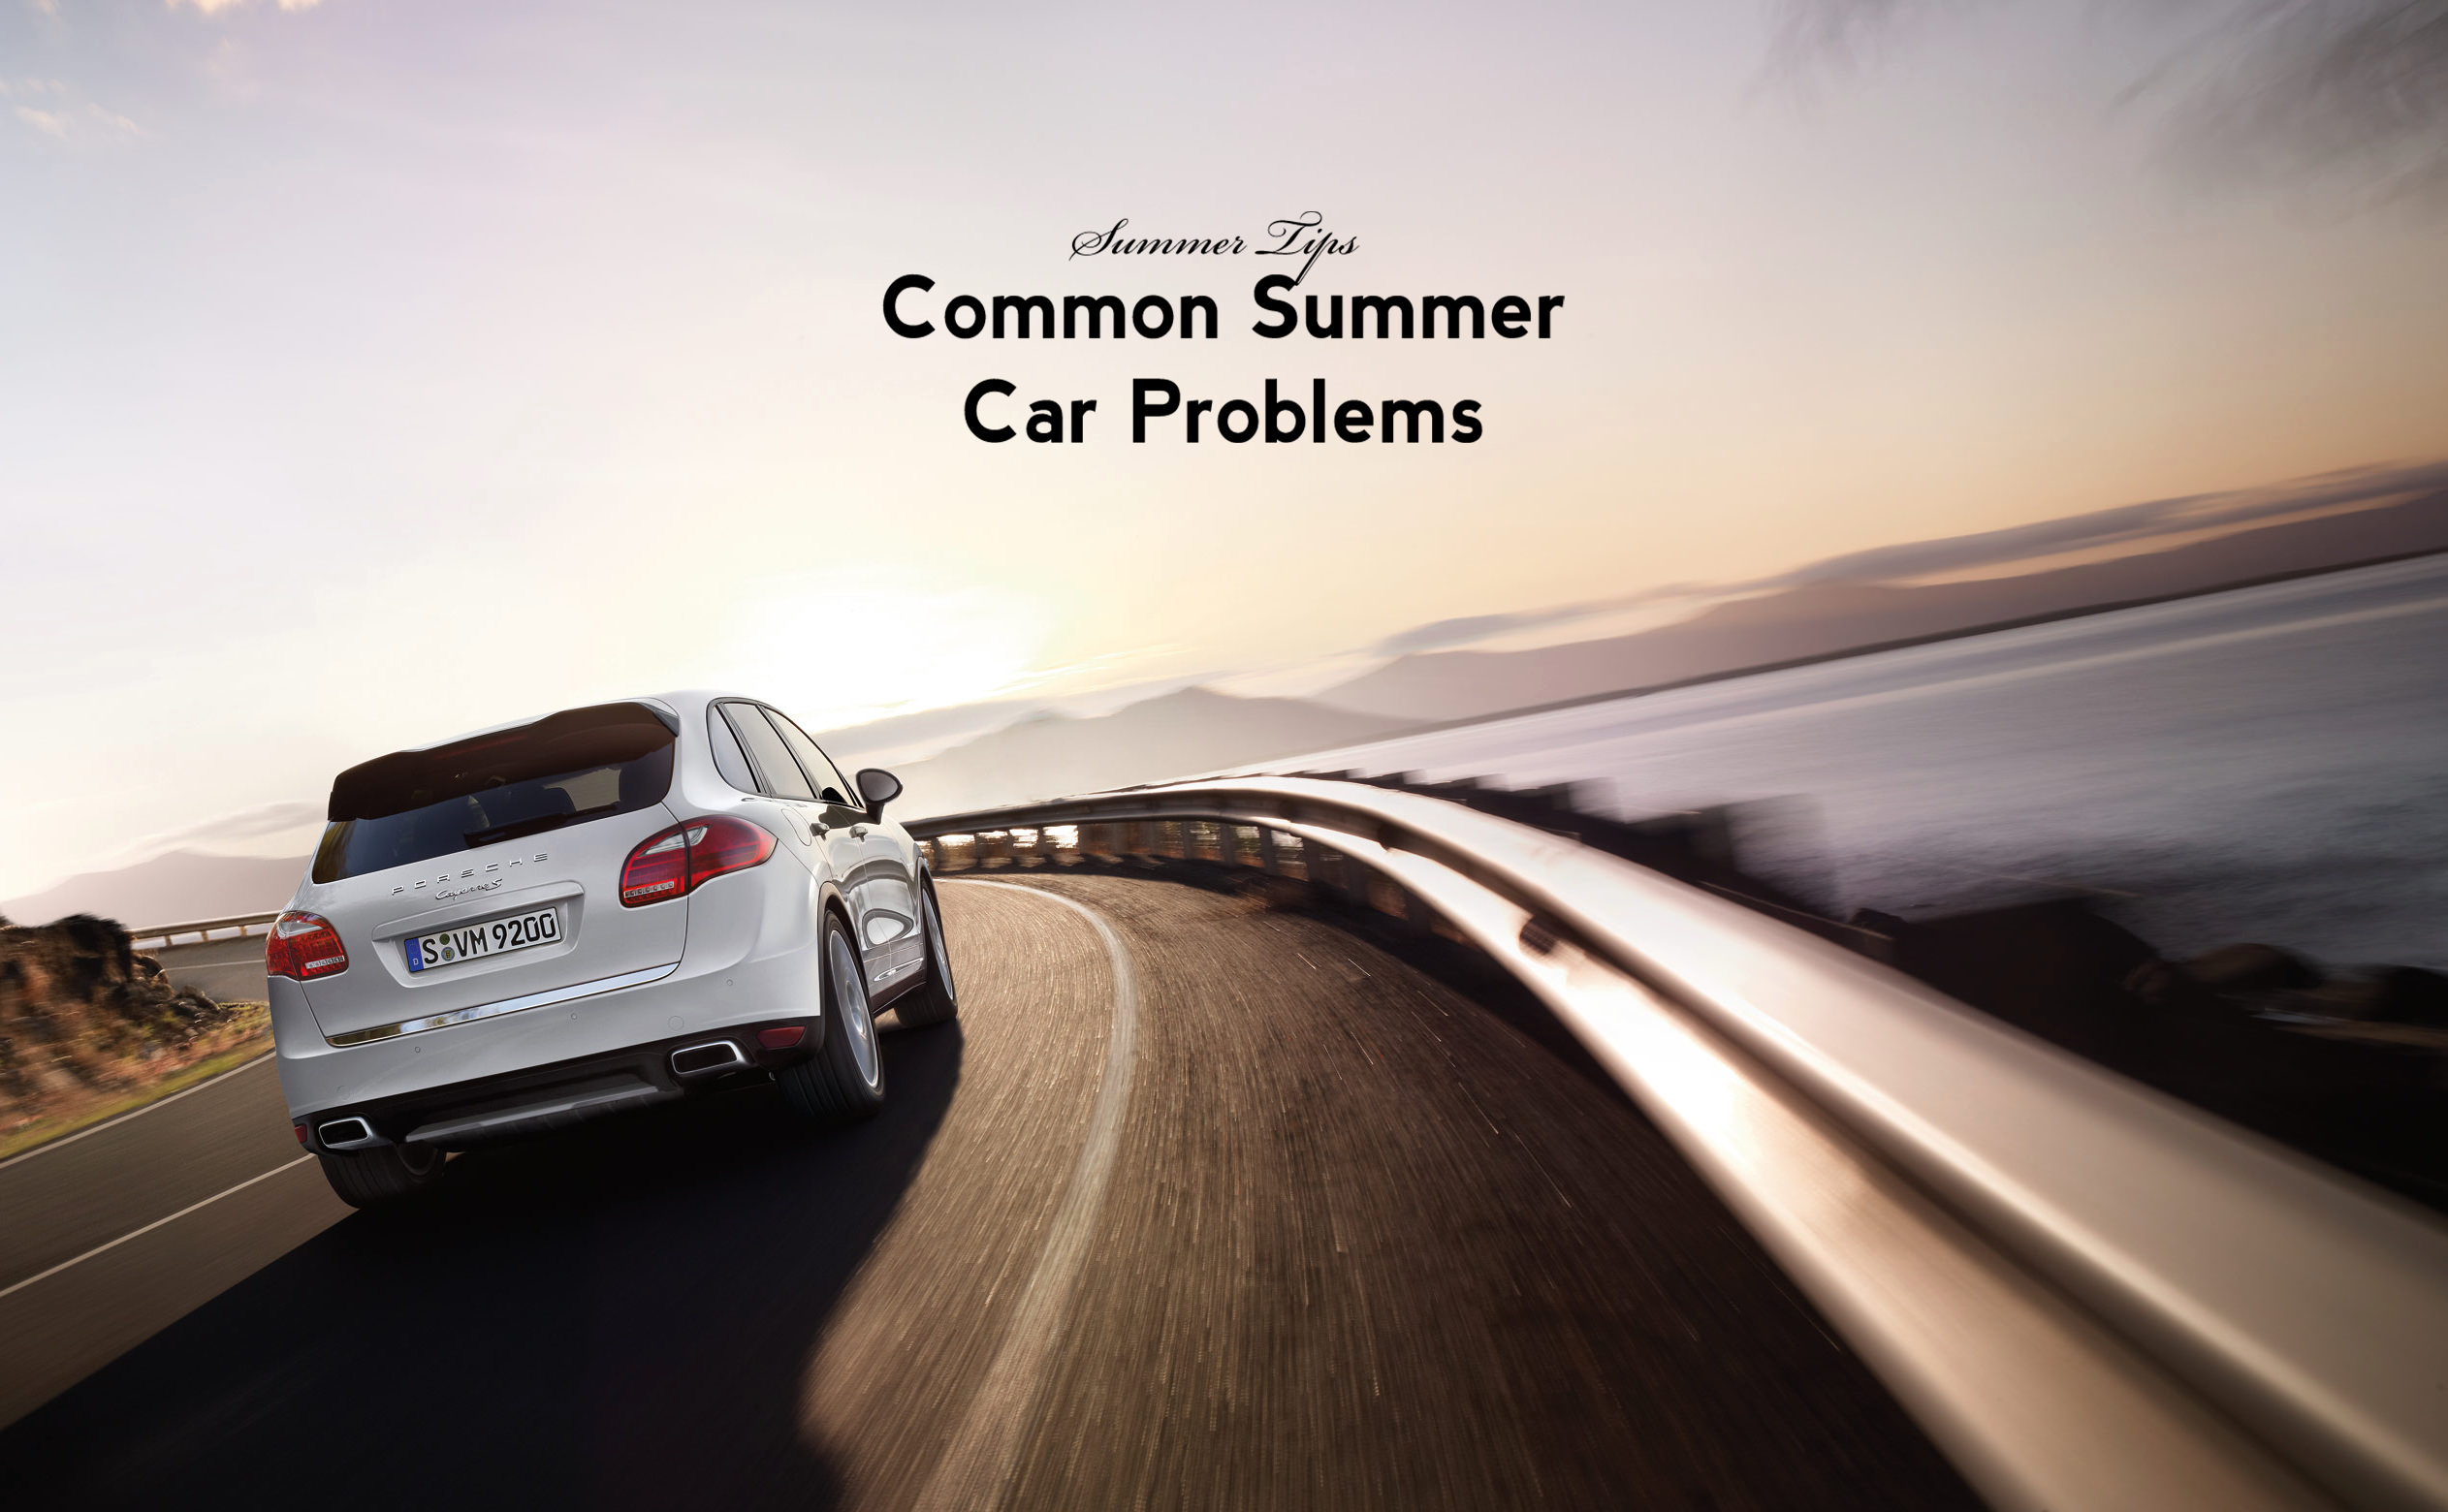 Common Summer Car Problems